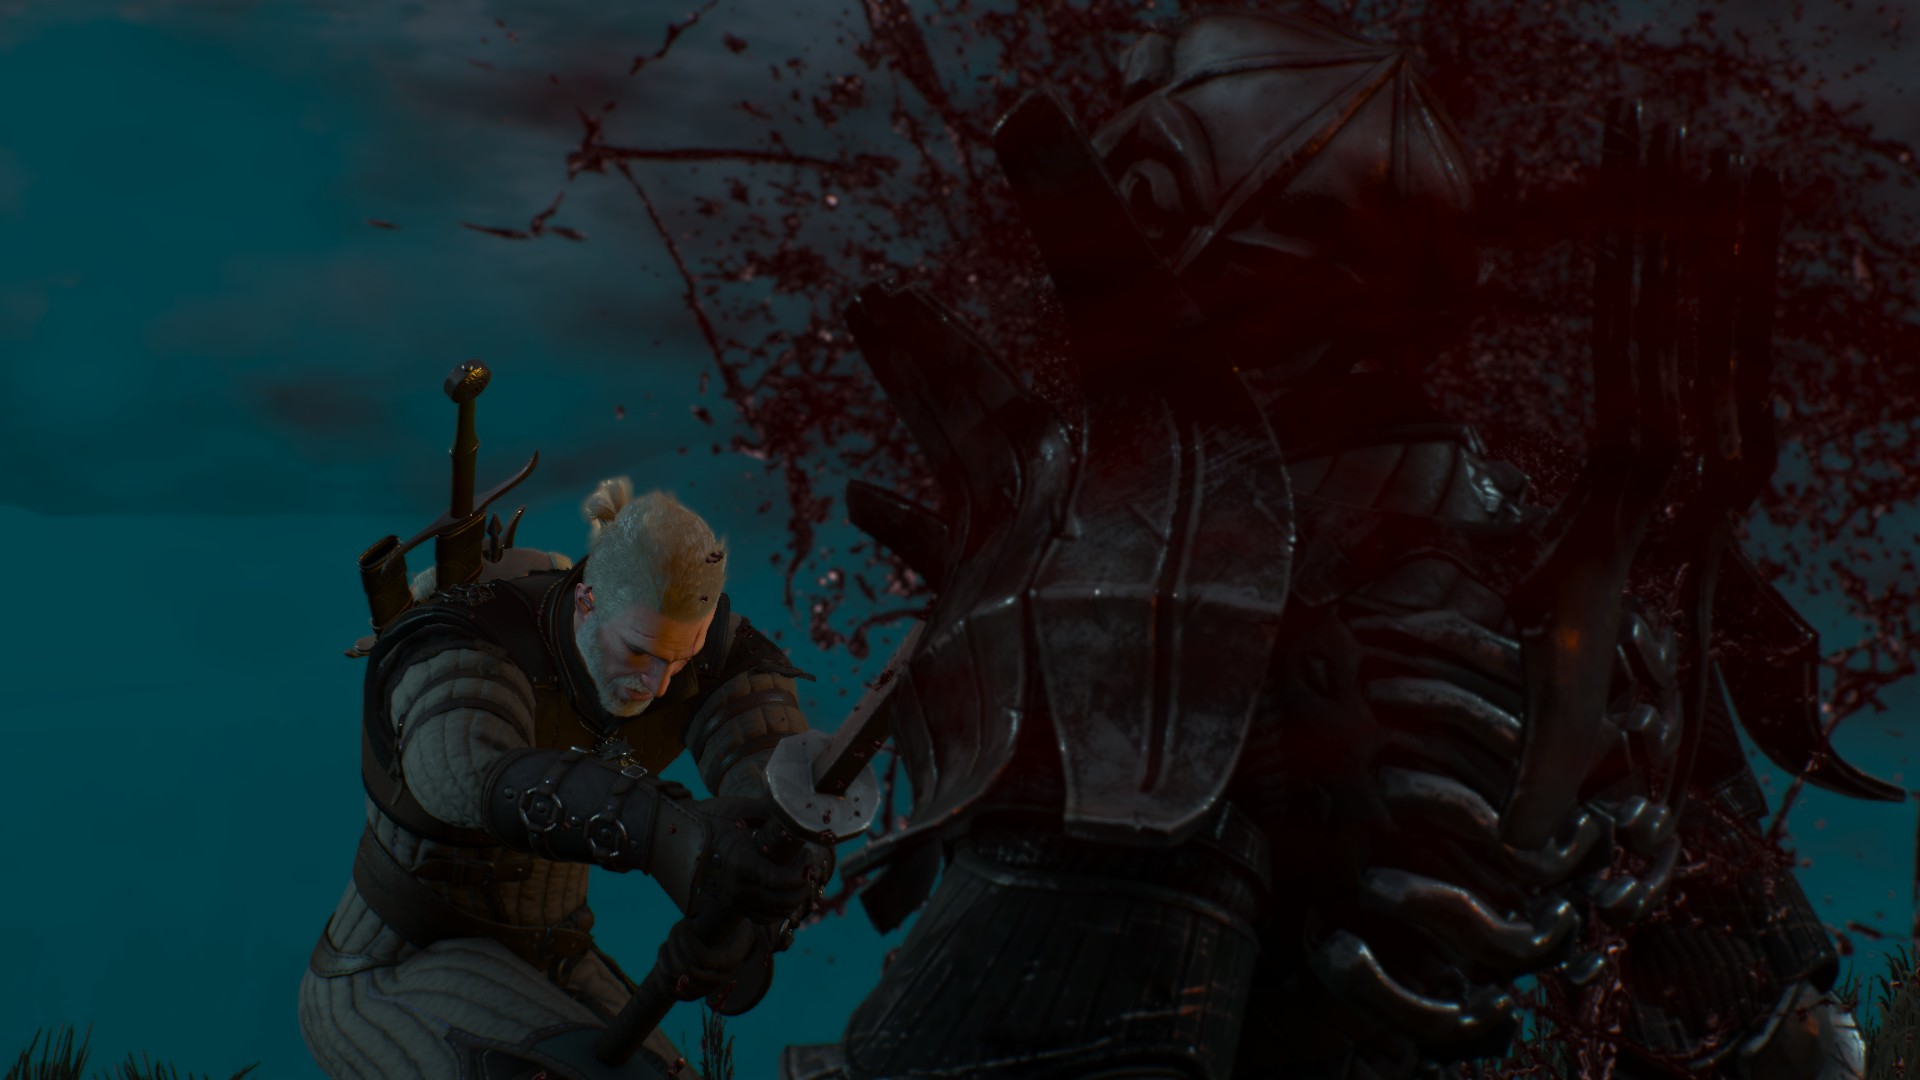 FATALITY! - Witcher 3: Wild Hunt, the